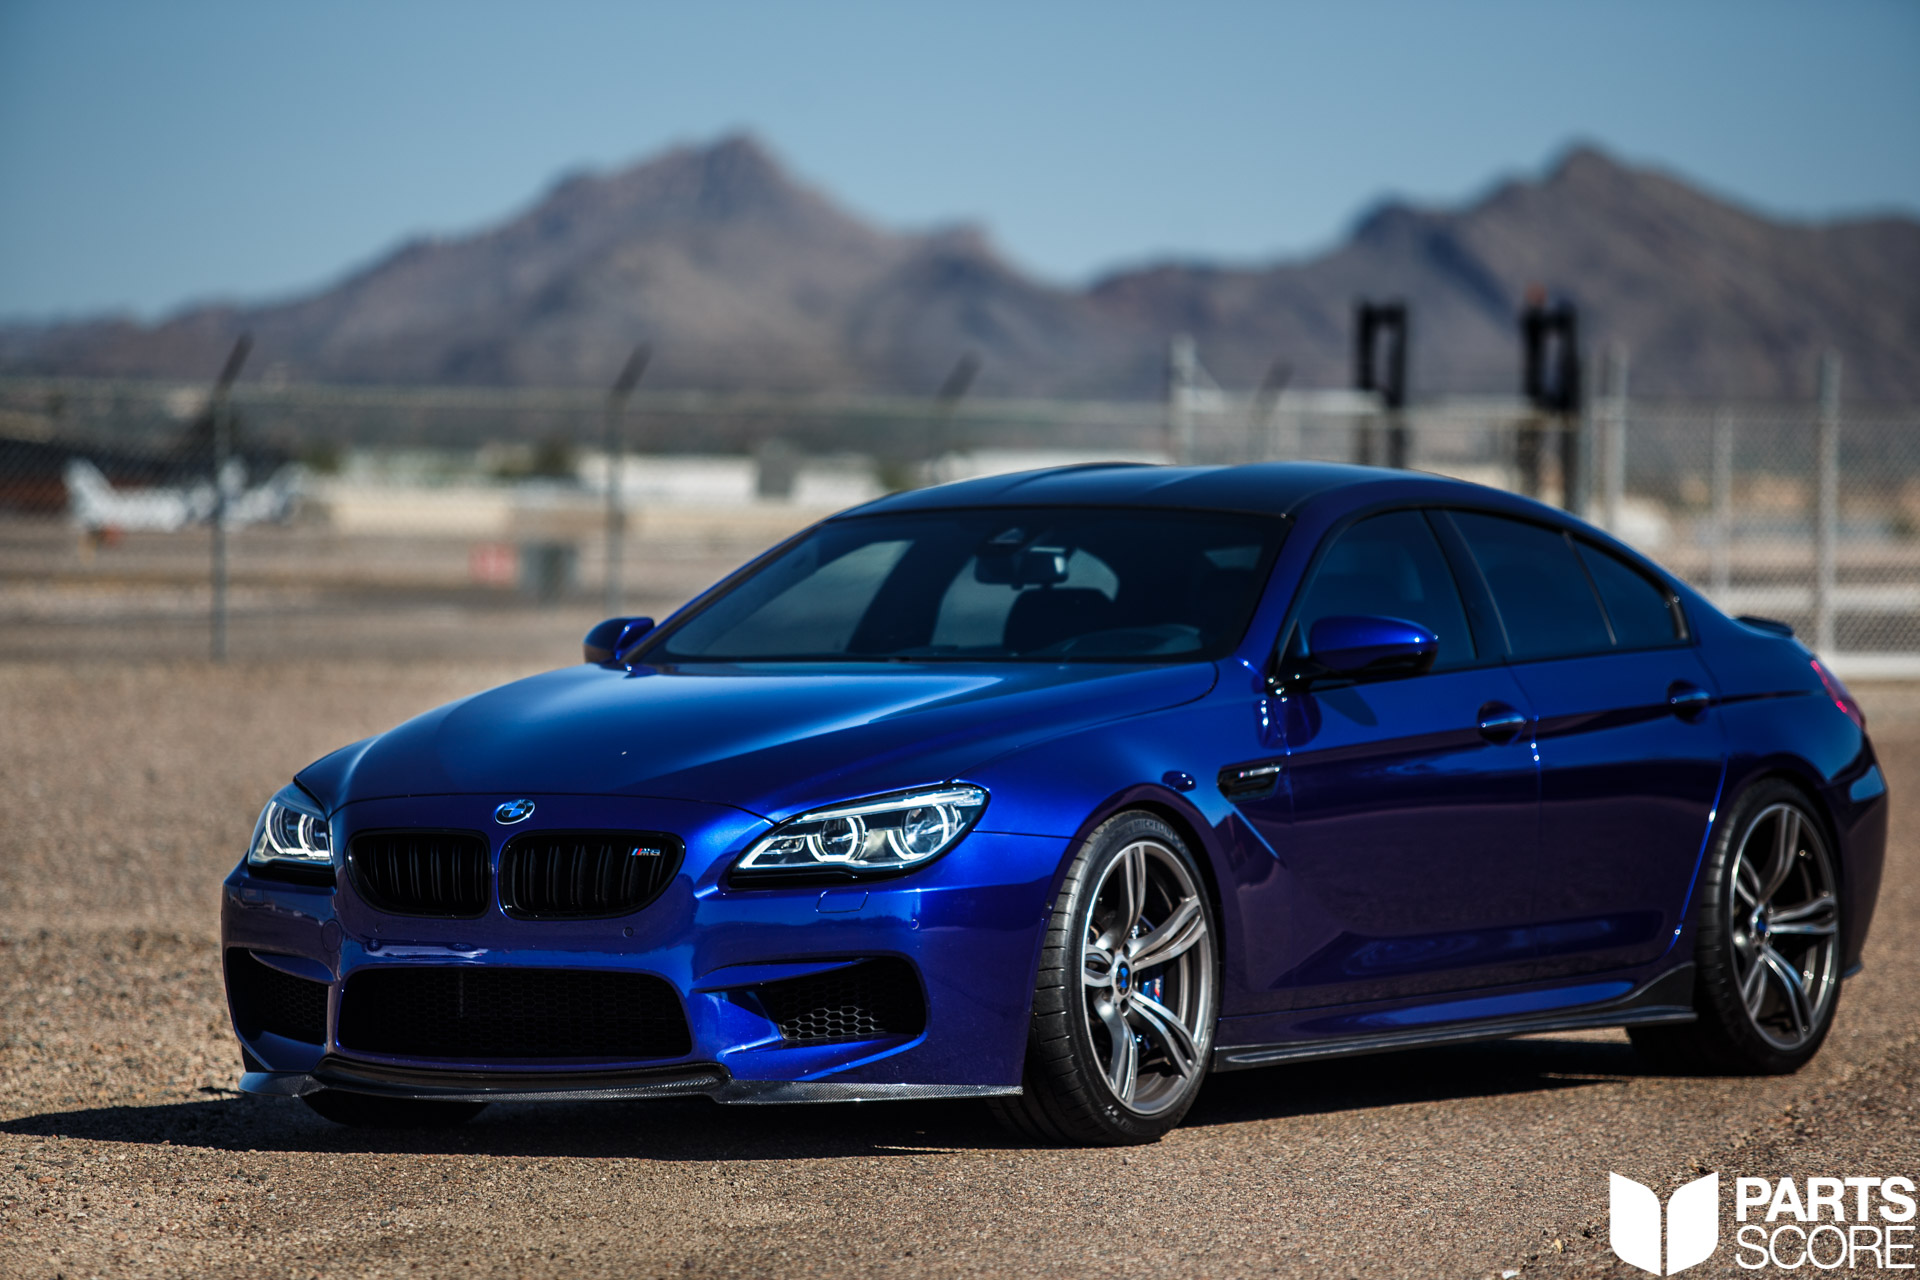 parts score, bmw, bmw m, bmw m4, bmw performance, bmw performance arizona, bmw performance scottsdale, bmw performance az, az bmw, az bmw group, carbon fiber, evolution race werks, snow performance, burger tuning, jb4, DINANTRONICS Performance Tuner Stage 2 for BMW F06 M6 Gran Coupe (S63TU), Dinan Free Flow Stainless Exhaust for BMW F06 M6 Gran Coupe, Dinan Carbon Fiber Cold Air Intake for BMW F06 M6 Gran Coupe, Dinan High Performance Adjustable Coil-Over Suspension System for BMW F06 M6 Gran Coupe, Dinan Pedal Cover Set for BMWs with DCT Transmissions, Dinan S-1 Under-hood Plaque and Dinan Deck Lid Badge, DTM Carbon Fiber Front Lip, DTM Carbon Fiber Trunk Spoiler, DTM Carbon Fiber Rear Diffuser, DTM Carbon Fiber Side Skirt Extensions, IND Distribution Cosmetic Package, San Marino Blue Metallic Painted Rear Reflectors, San Marino Blue Metallic Painted Front Reflectors, Gloss Black Painted Front Grille Set, Gloss Black Side Marker Set, AFE Power: Carbon Fiber S63TU Engine Cover, clear coated to match the Dinan Cold Air Intake, Burger Tuning 10mm Spacers, Burger Tuning 12mm Spacers